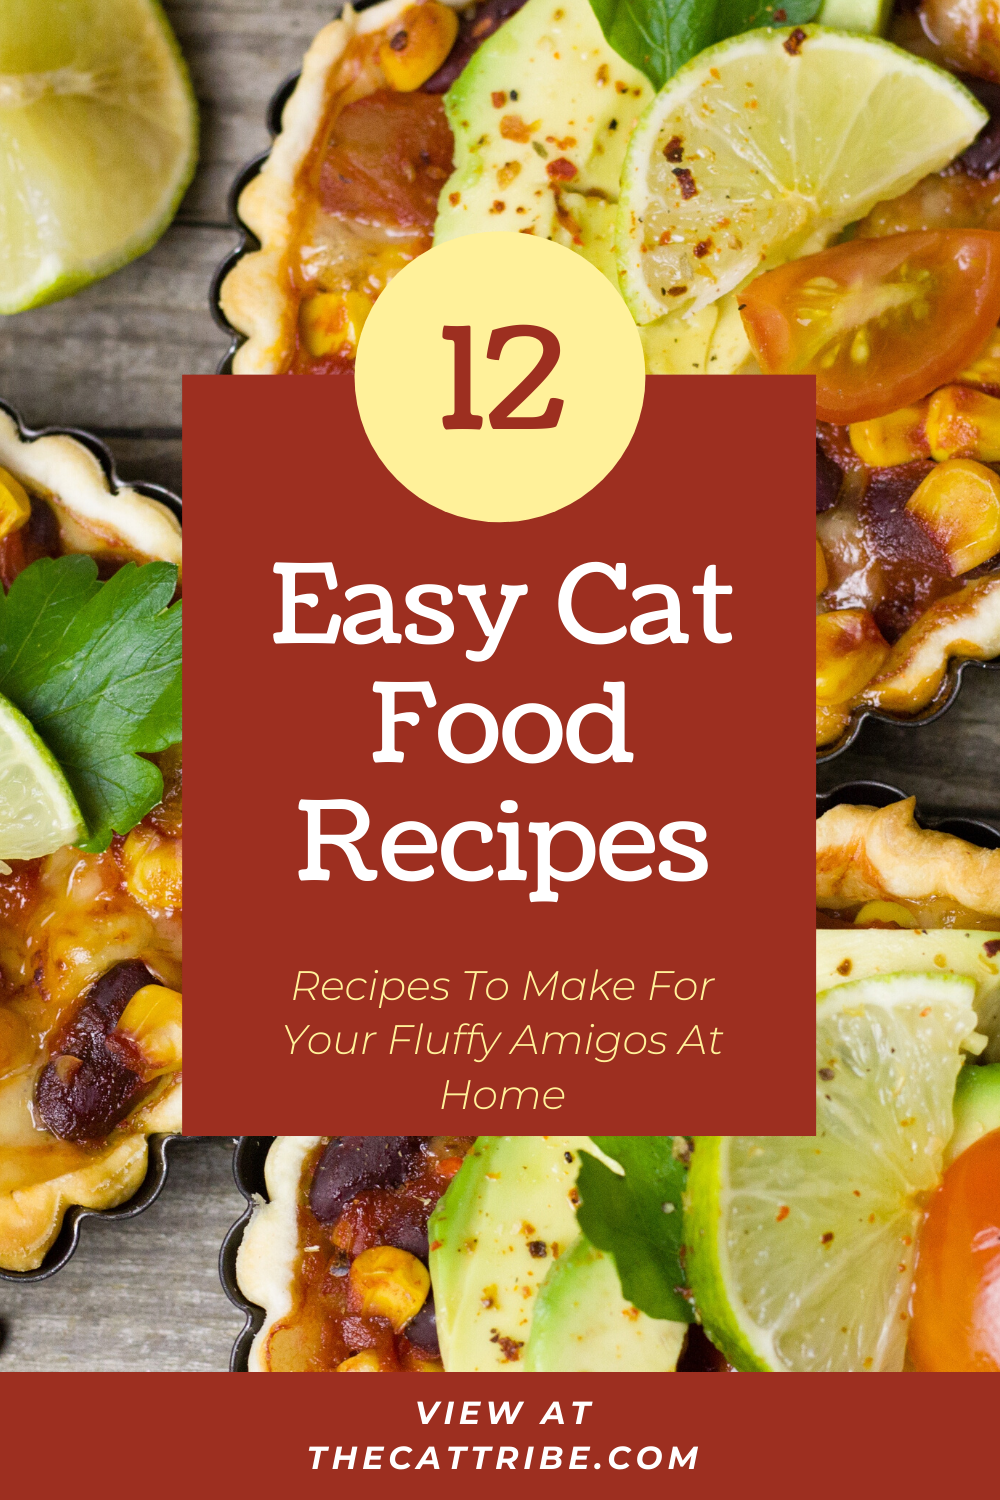 Top 12 Easy Cat Food Recipes The Cat Tribe In 2020 Easy Cat Food Recipe Cooking For Beginners Recipes